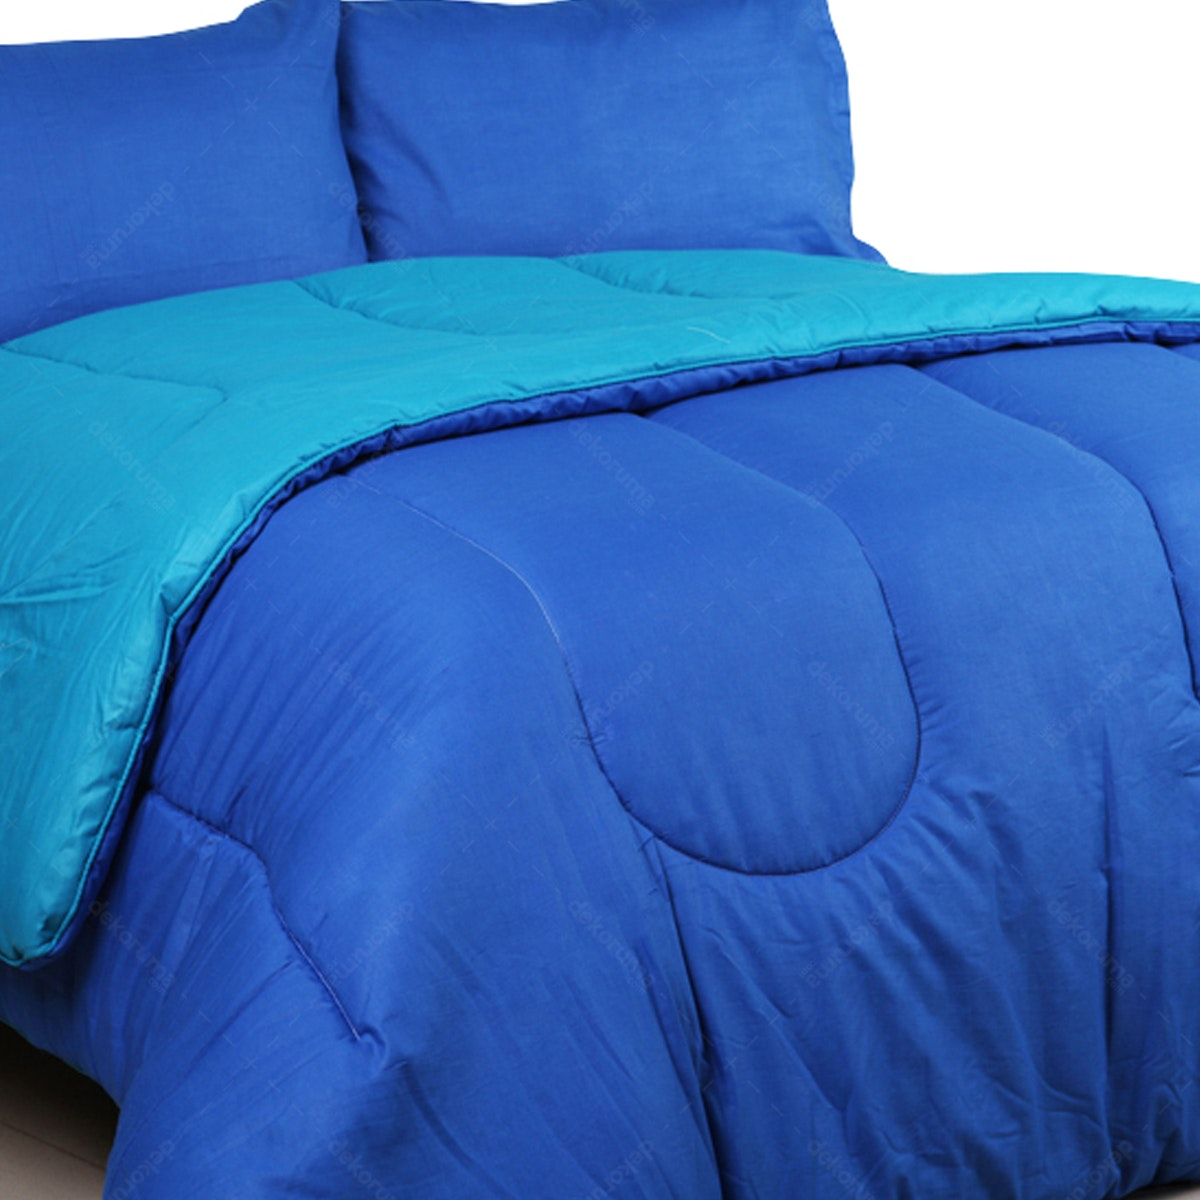 Sierra Bed Cover Dan Sprei Polos Dark Biru Mix Tosca 160x200